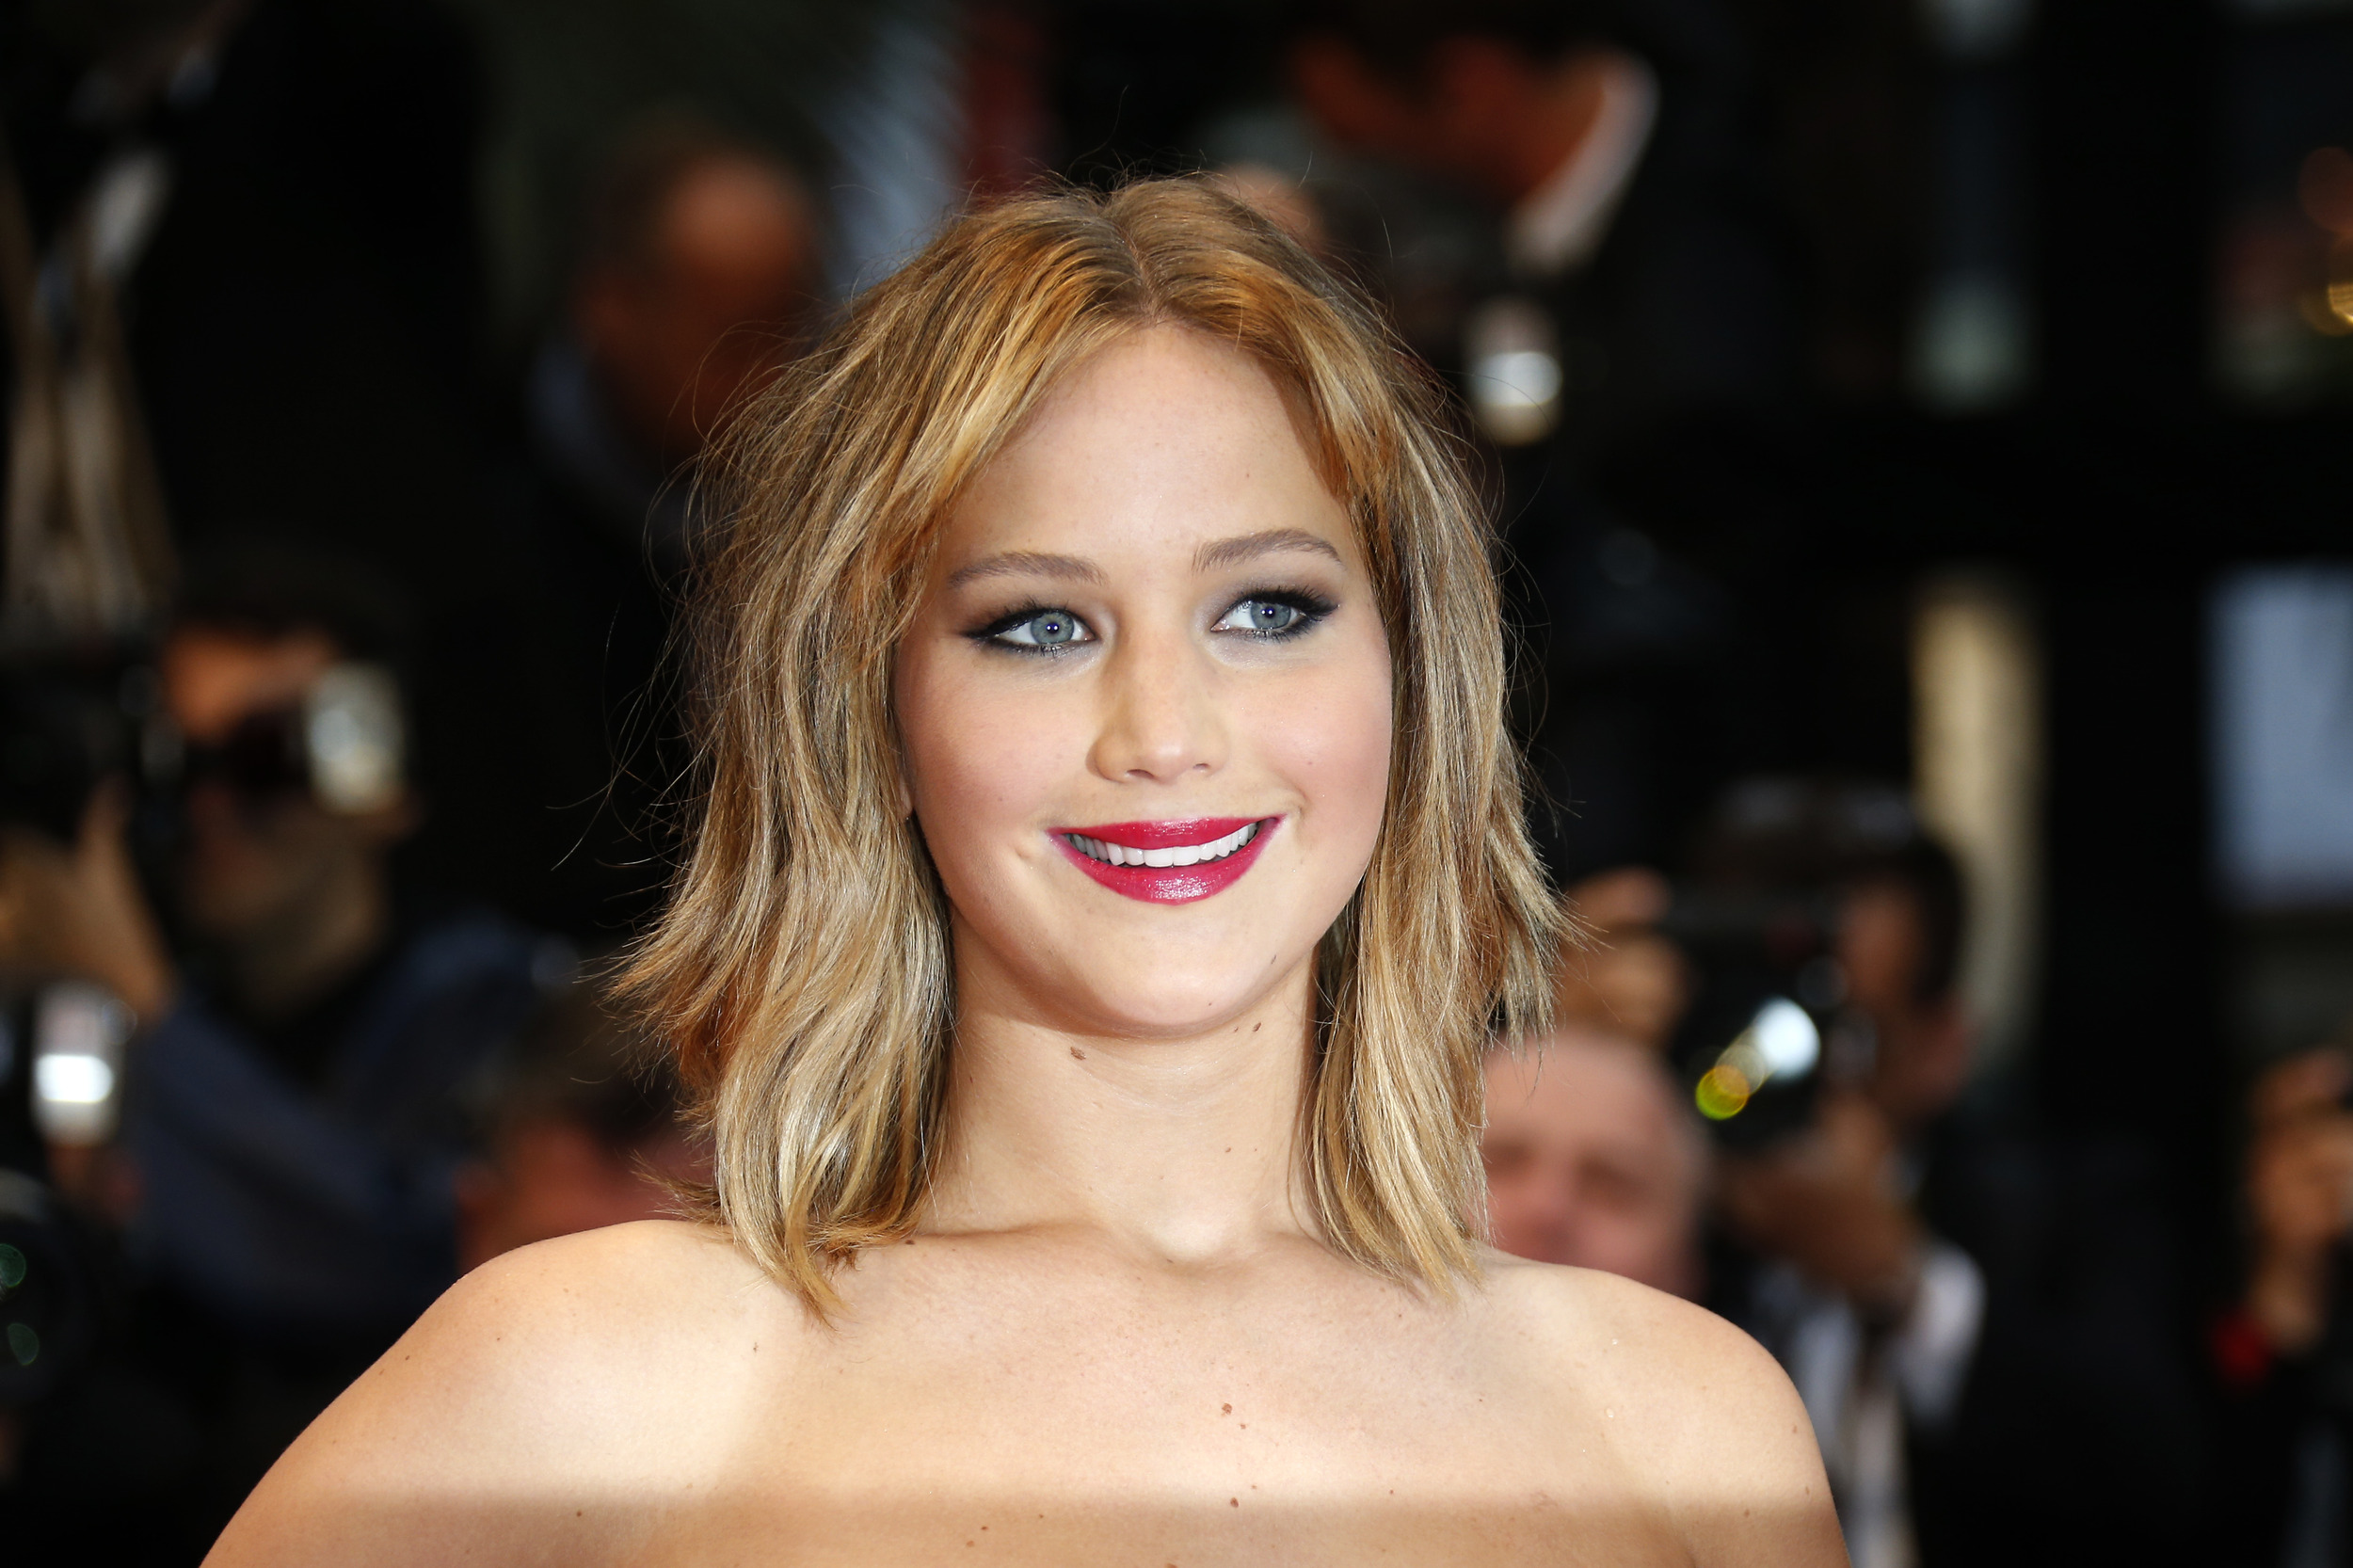 Puperty ) nude 12. 12 Quotes That Made Us Fall in Love With J-Law (Even More)!